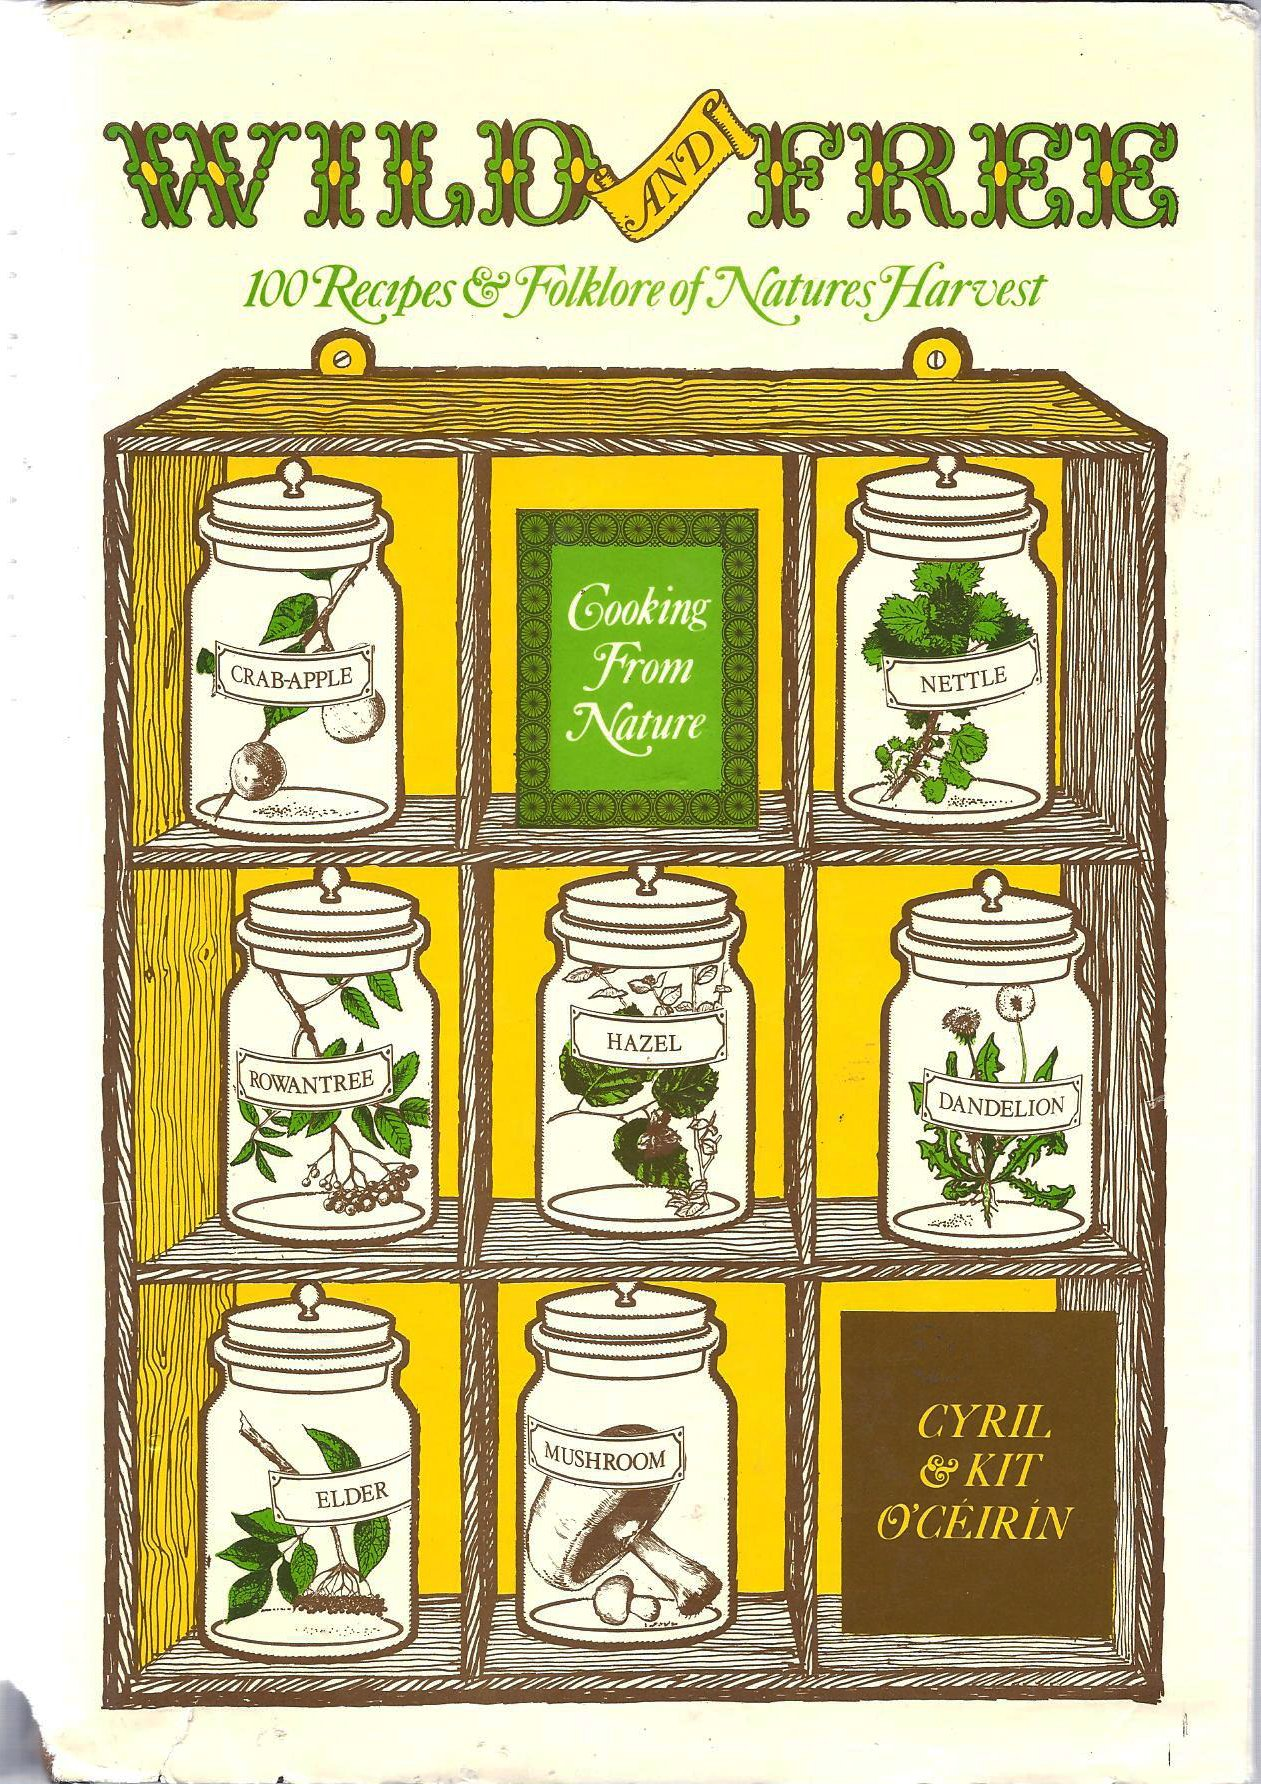 Wild and free: Cooking from nature, O Ceirin, Cyril